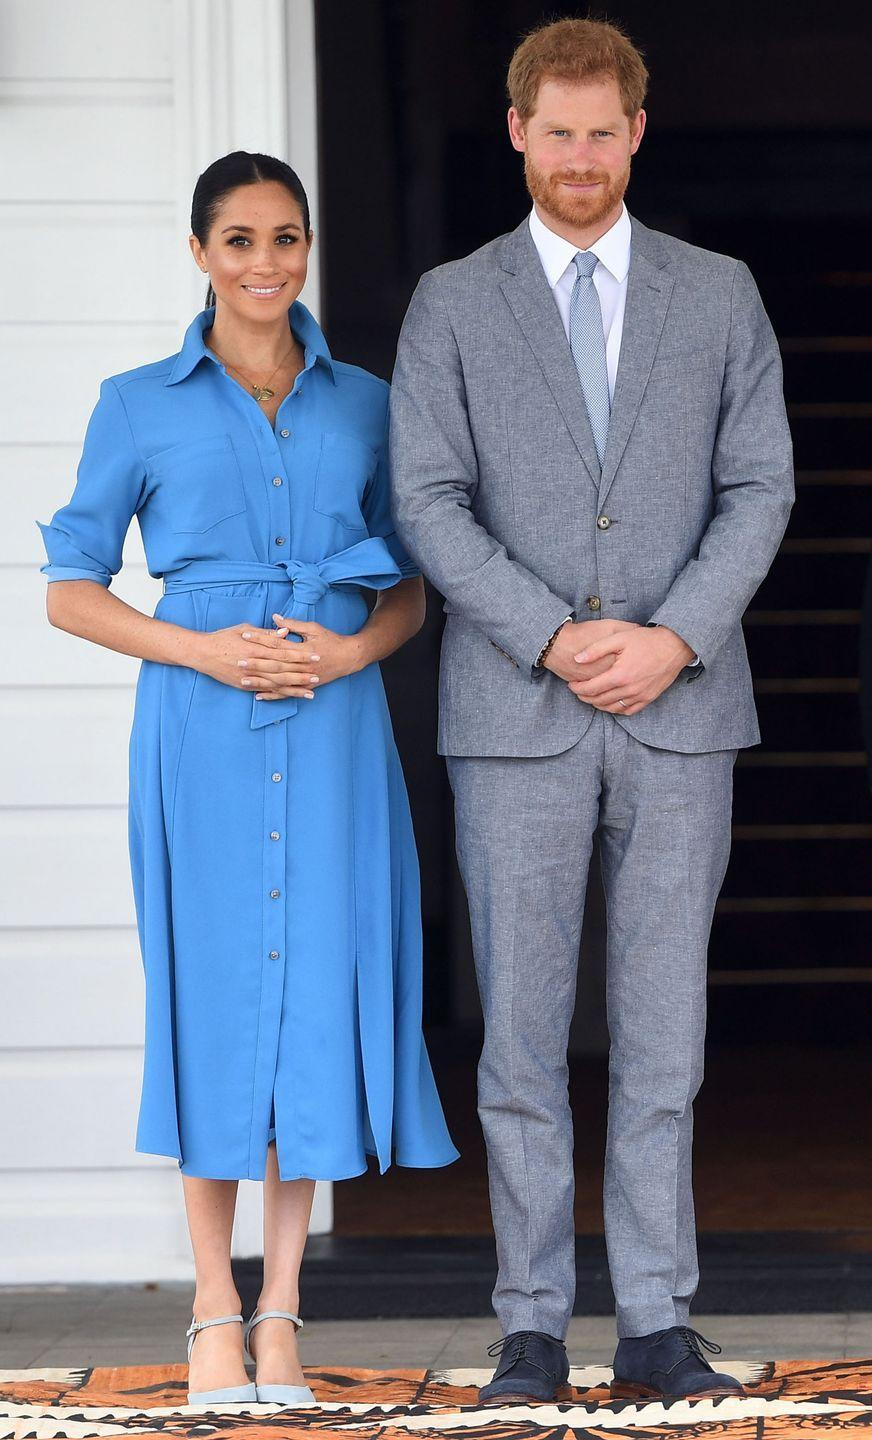 """<p>The Duchess changed for her afternoon engagements into a blue dress by Veronica Beard paired with blue heels by Banana Republic.</p><p><a class=""""link rapid-noclick-resp"""" href=""""https://go.redirectingat.com?id=74968X1596630&url=https%3A%2F%2Fbananarepublic.gap.com%2Fbrowse%2Fproduct.do%3Fvid%3D1%26pid%3D323475012%26searchText%3DMadison%2B12-Hour%2BSide%2BCut-Out%2BPump&sref=https%3A%2F%2Fwww.townandcountrymag.com%2Fstyle%2Ffashion-trends%2Fg3272%2Fmeghan-markle-preppy-style%2F"""" rel=""""nofollow noopener"""" target=""""_blank"""" data-ylk=""""slk:SHOP NOW"""">SHOP NOW</a> <em>Madison 12-Hour Side Cut-Out Pump, $89.50</em></p>"""